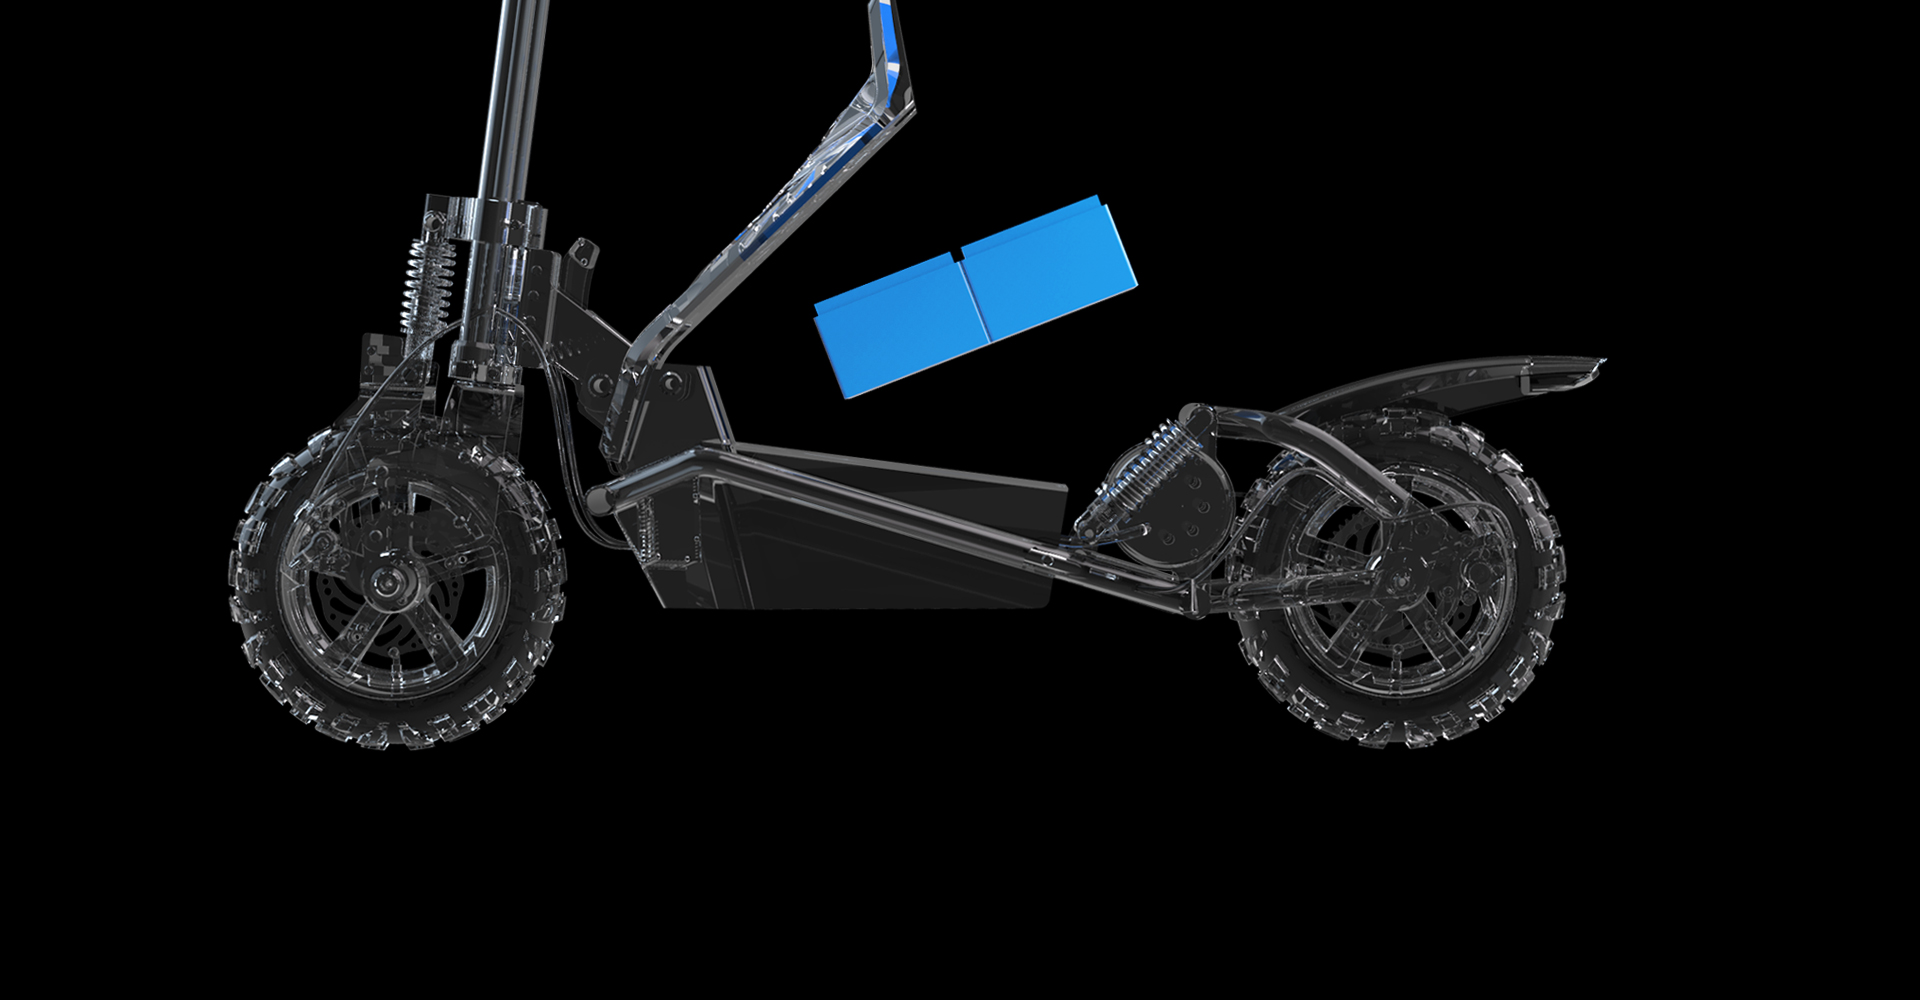 A cross-country city transport tool with a custom motor